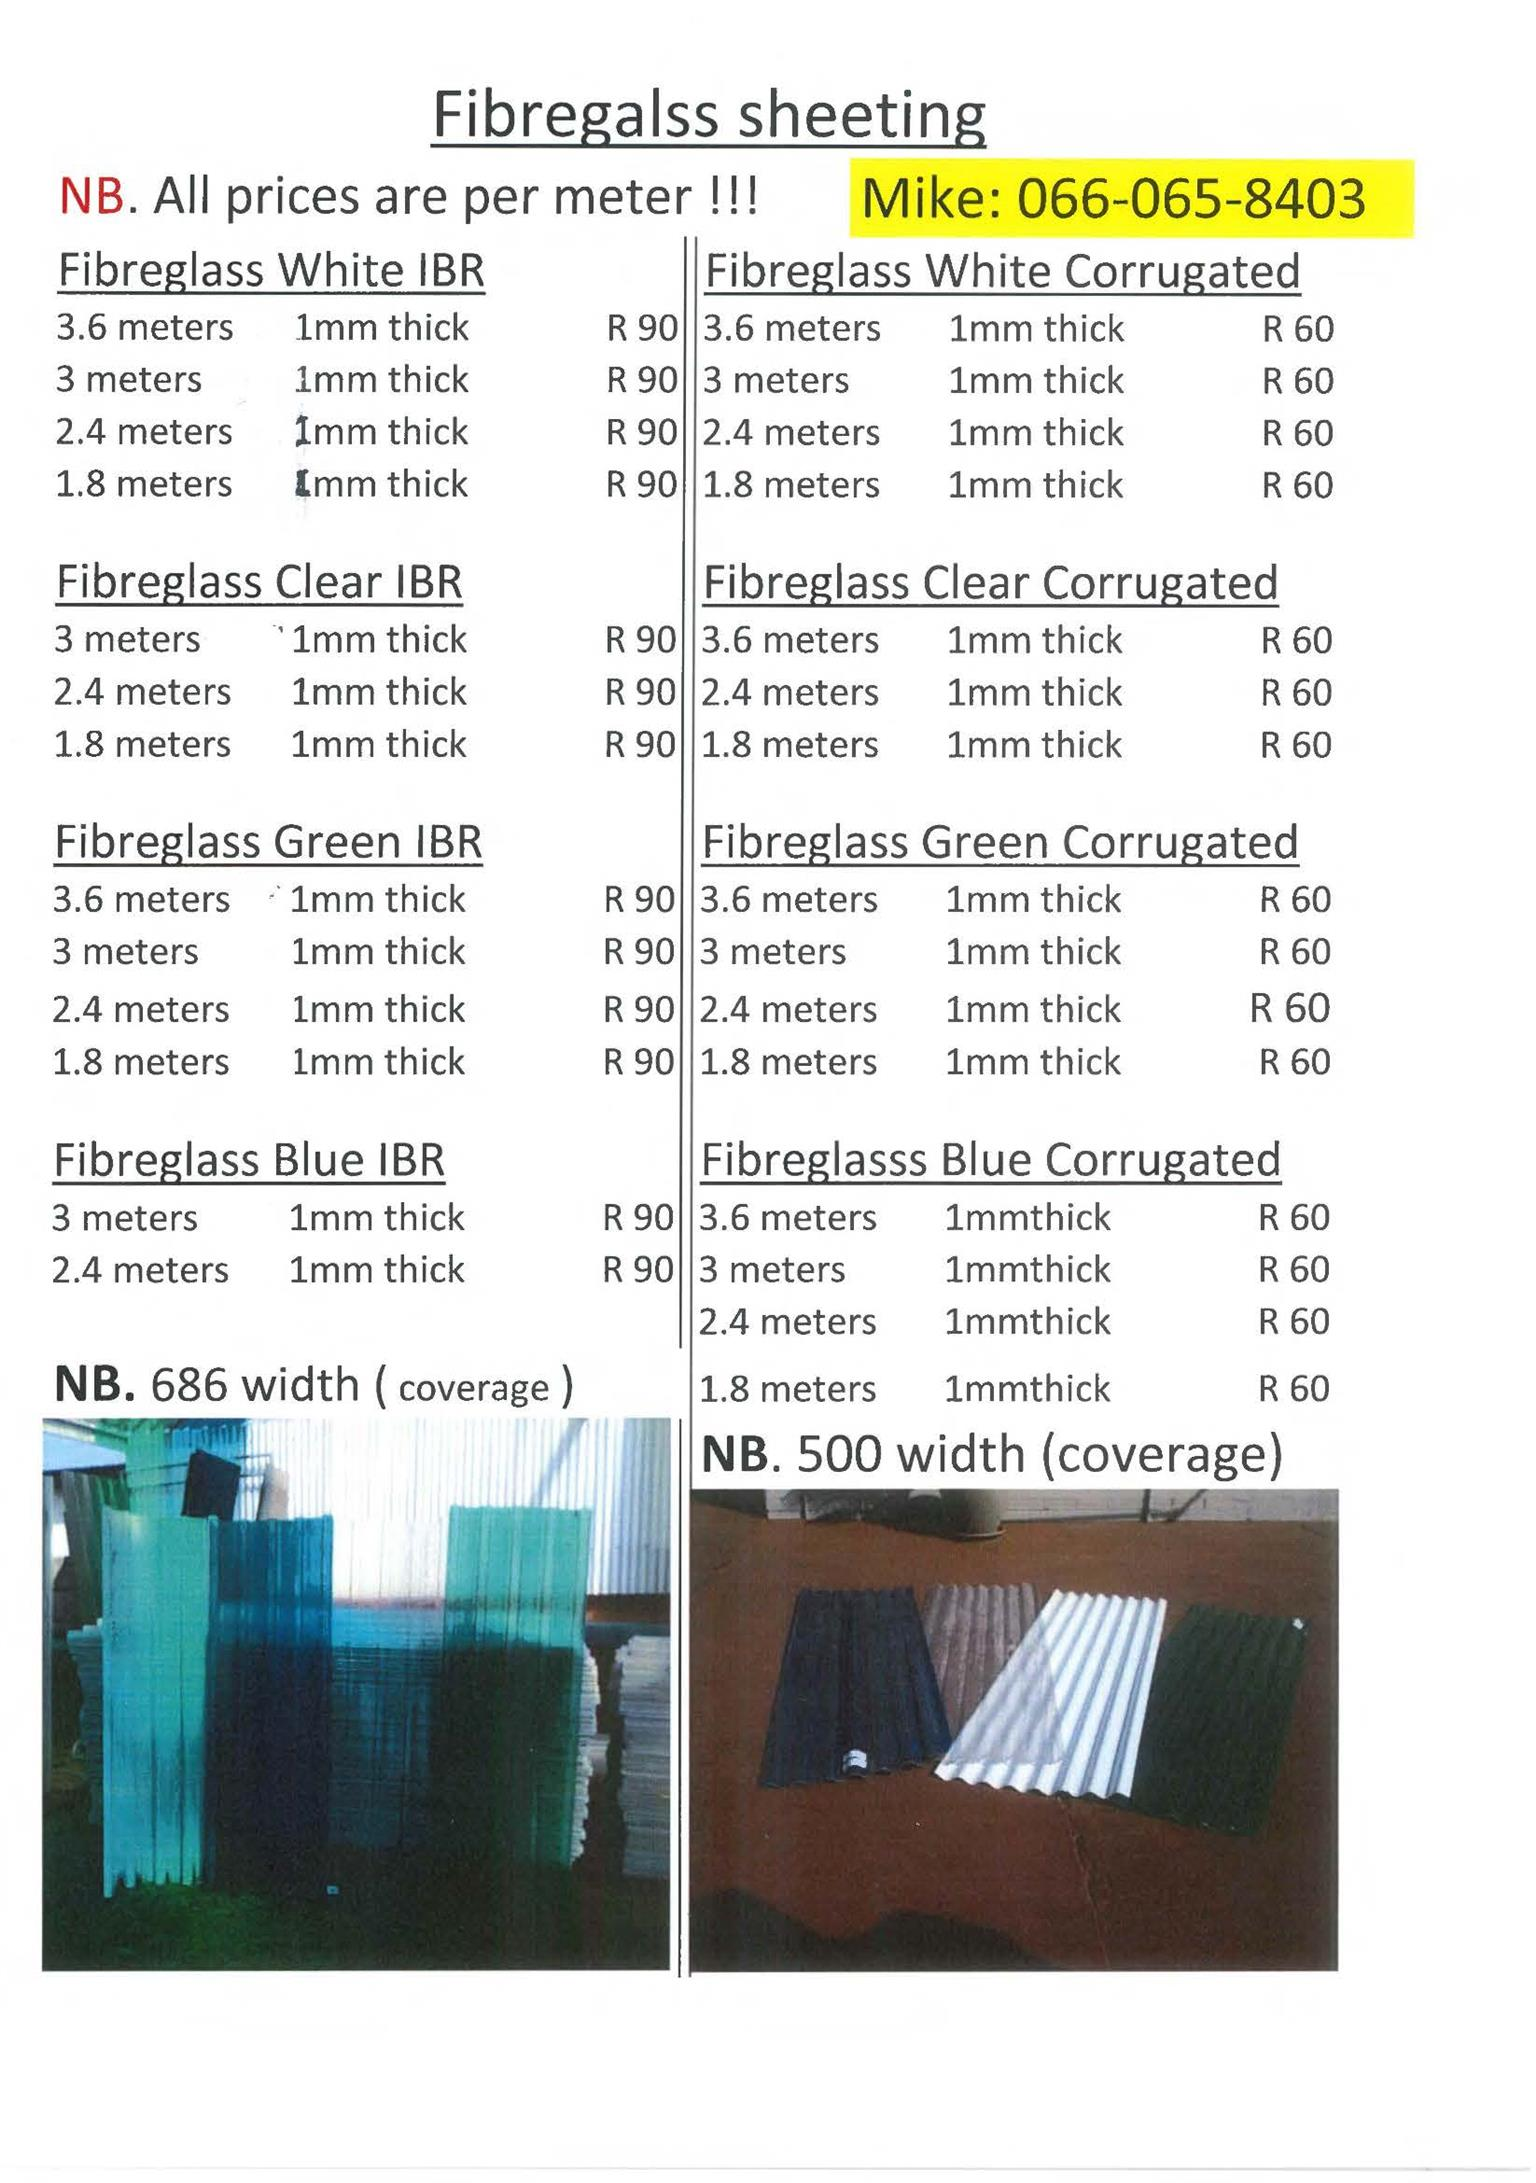 Fibre Glass sheeting and polycarb sheeting.